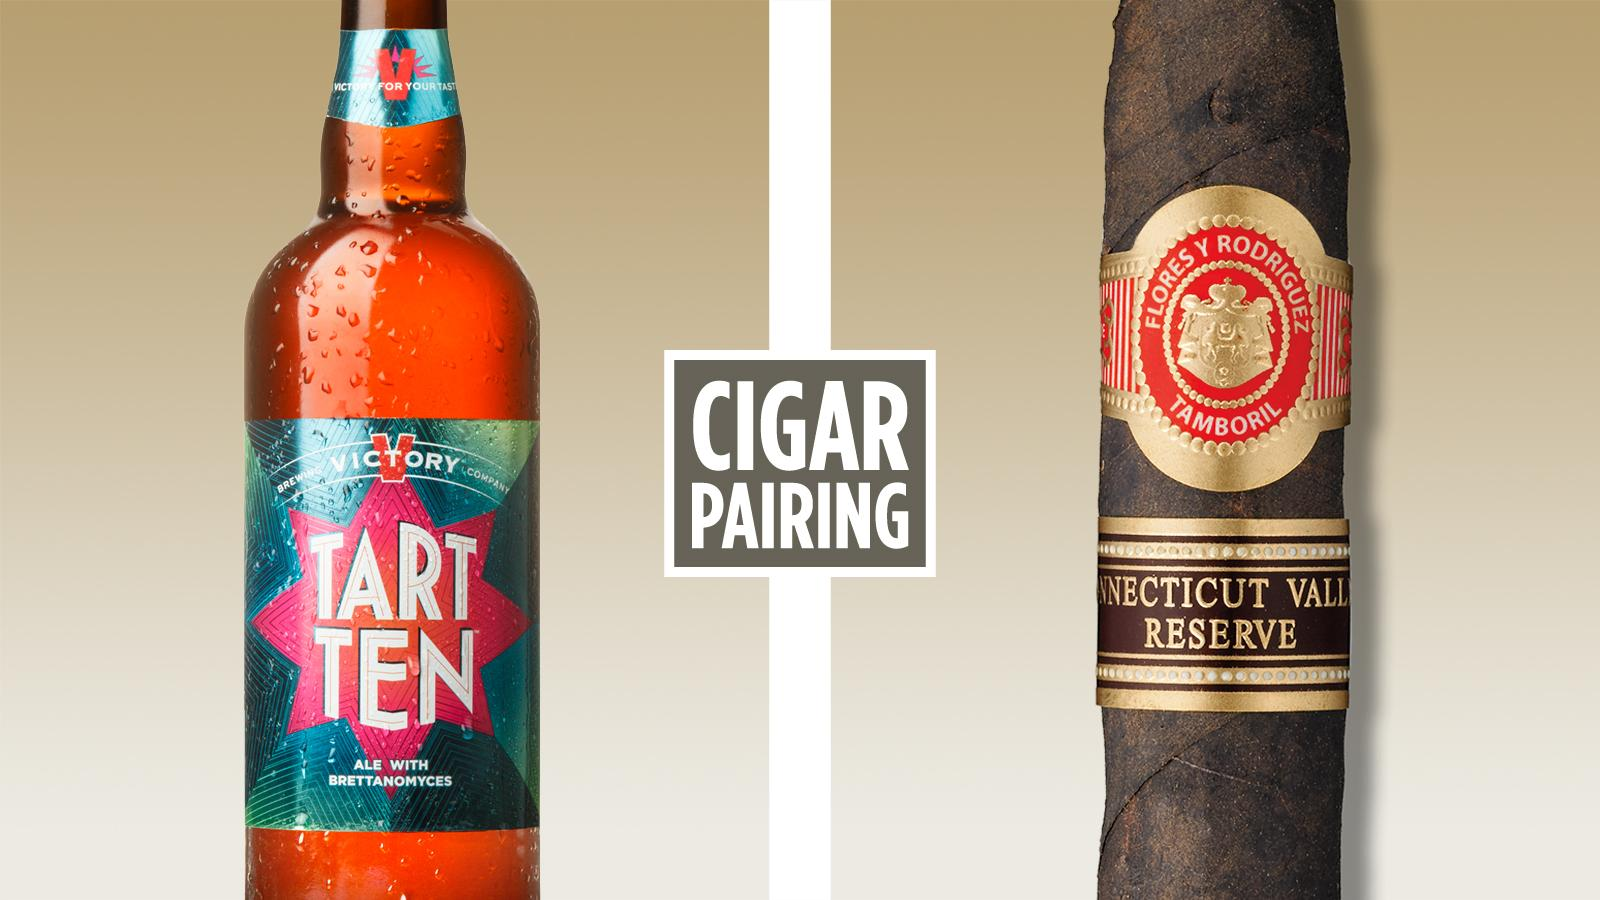 Cigar Pairing: Victory Brewing Tart Ten